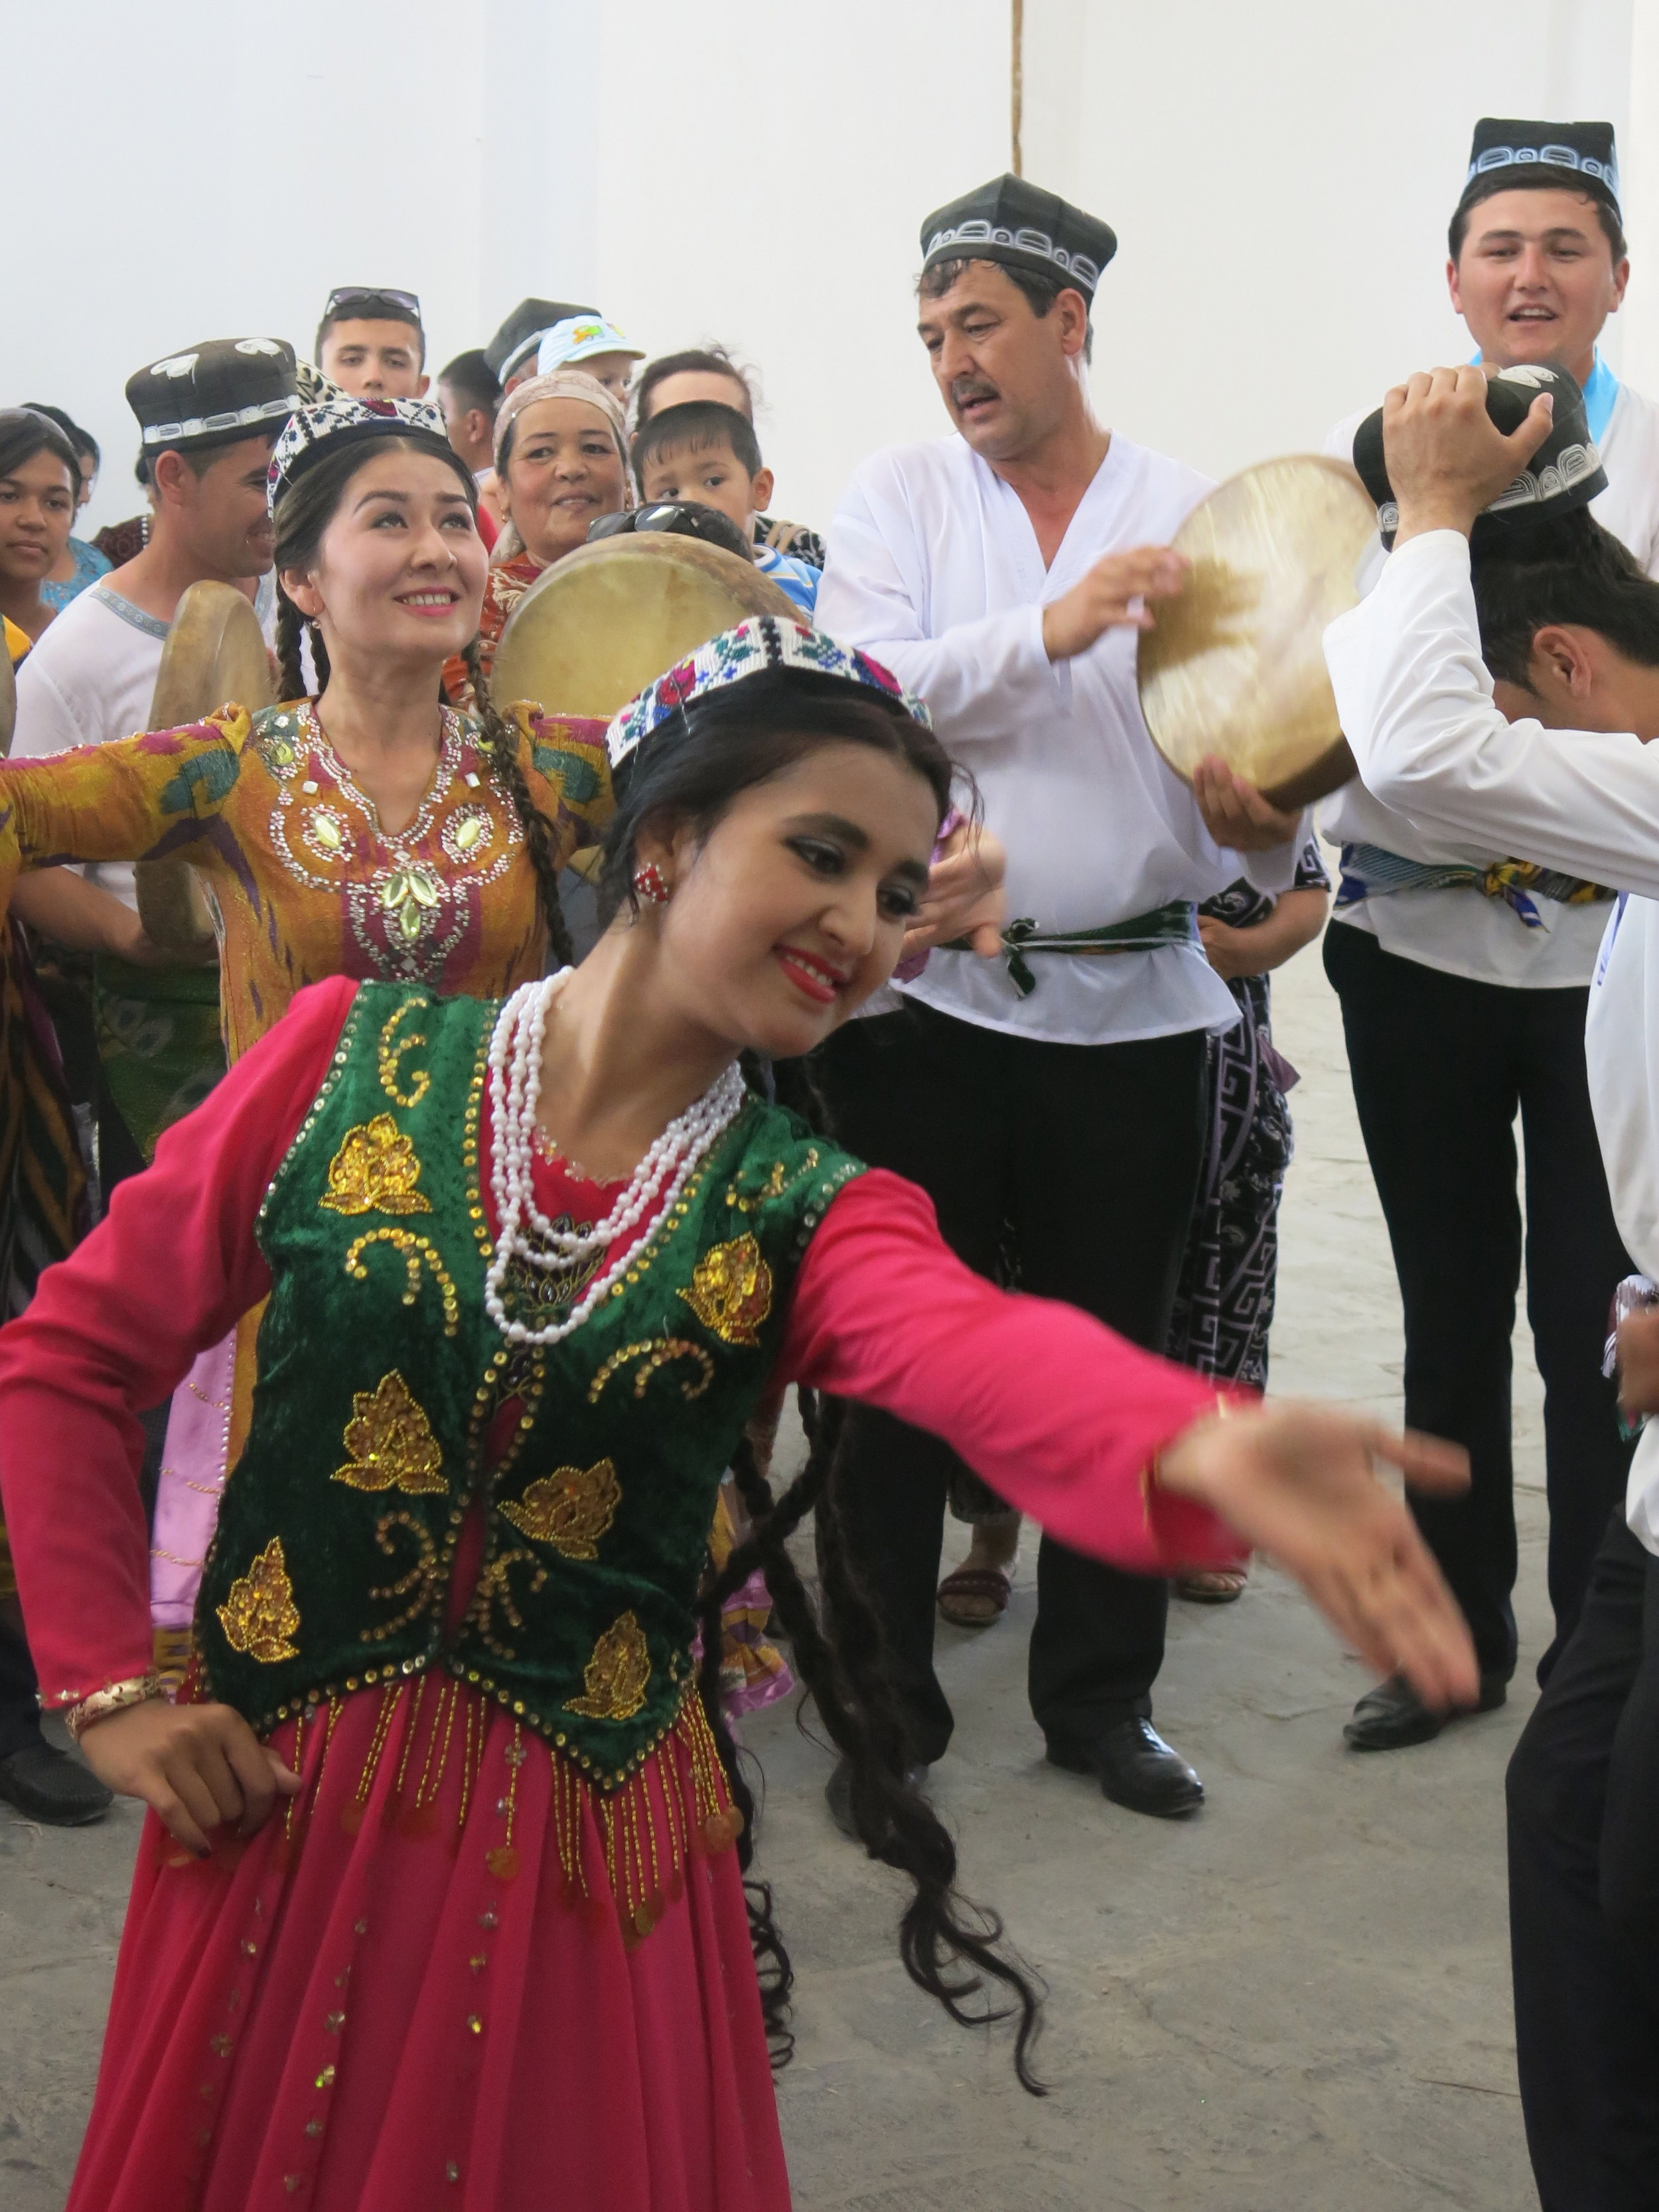 Local women performing dances inside a trading dome